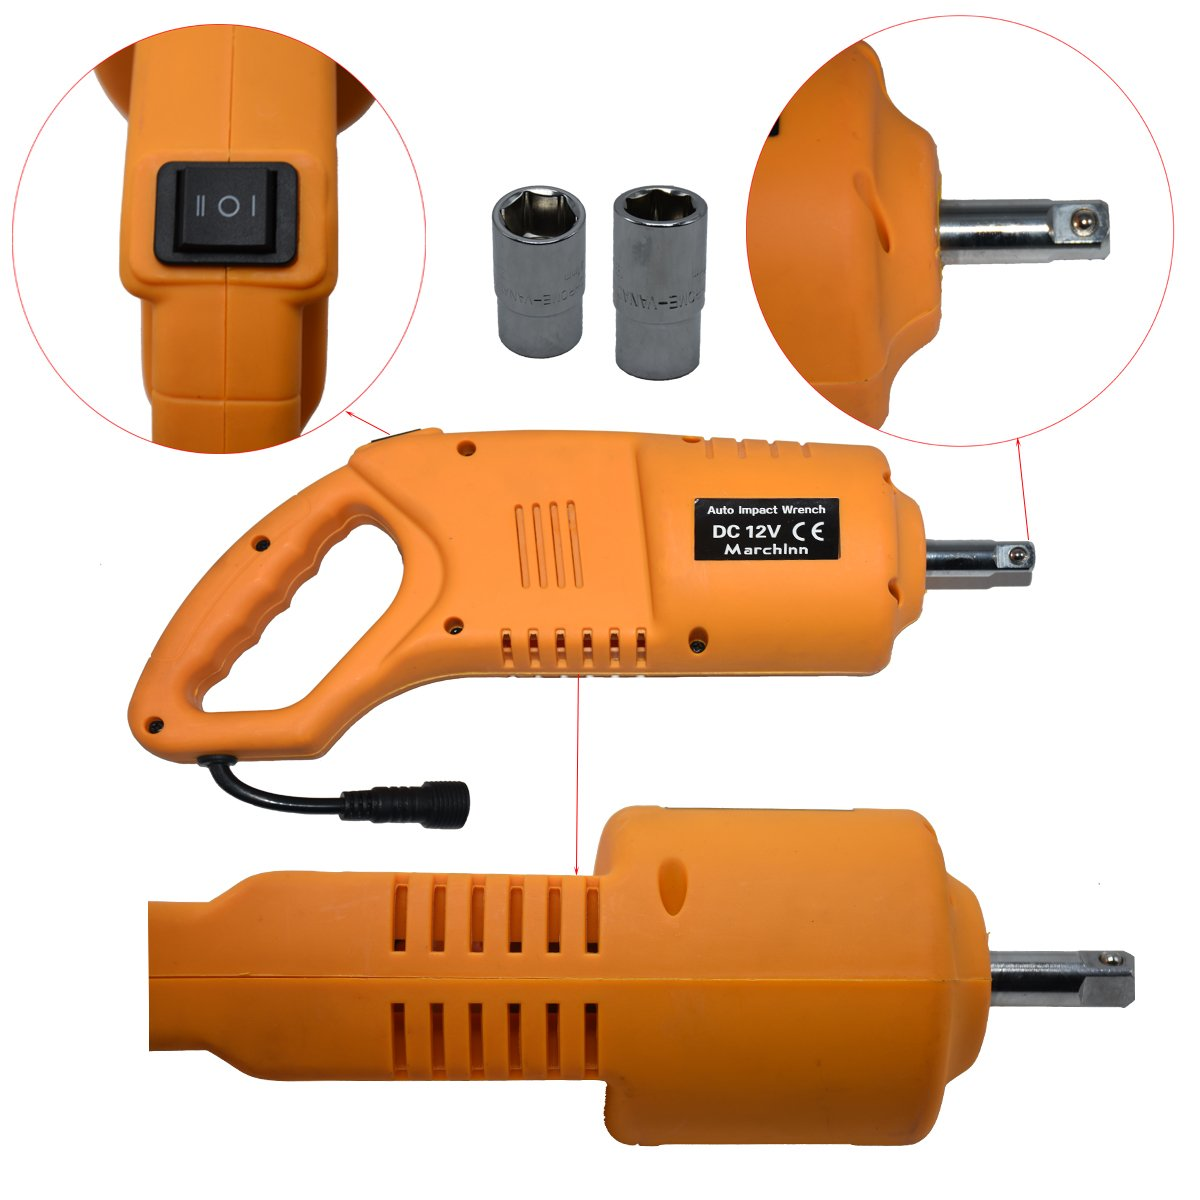 Electric Car Jack and Electric Impact Wrench with Wireless Remote Double Saddles for Vehicle and SUV MarchInn 12V DC 3T 6600lb